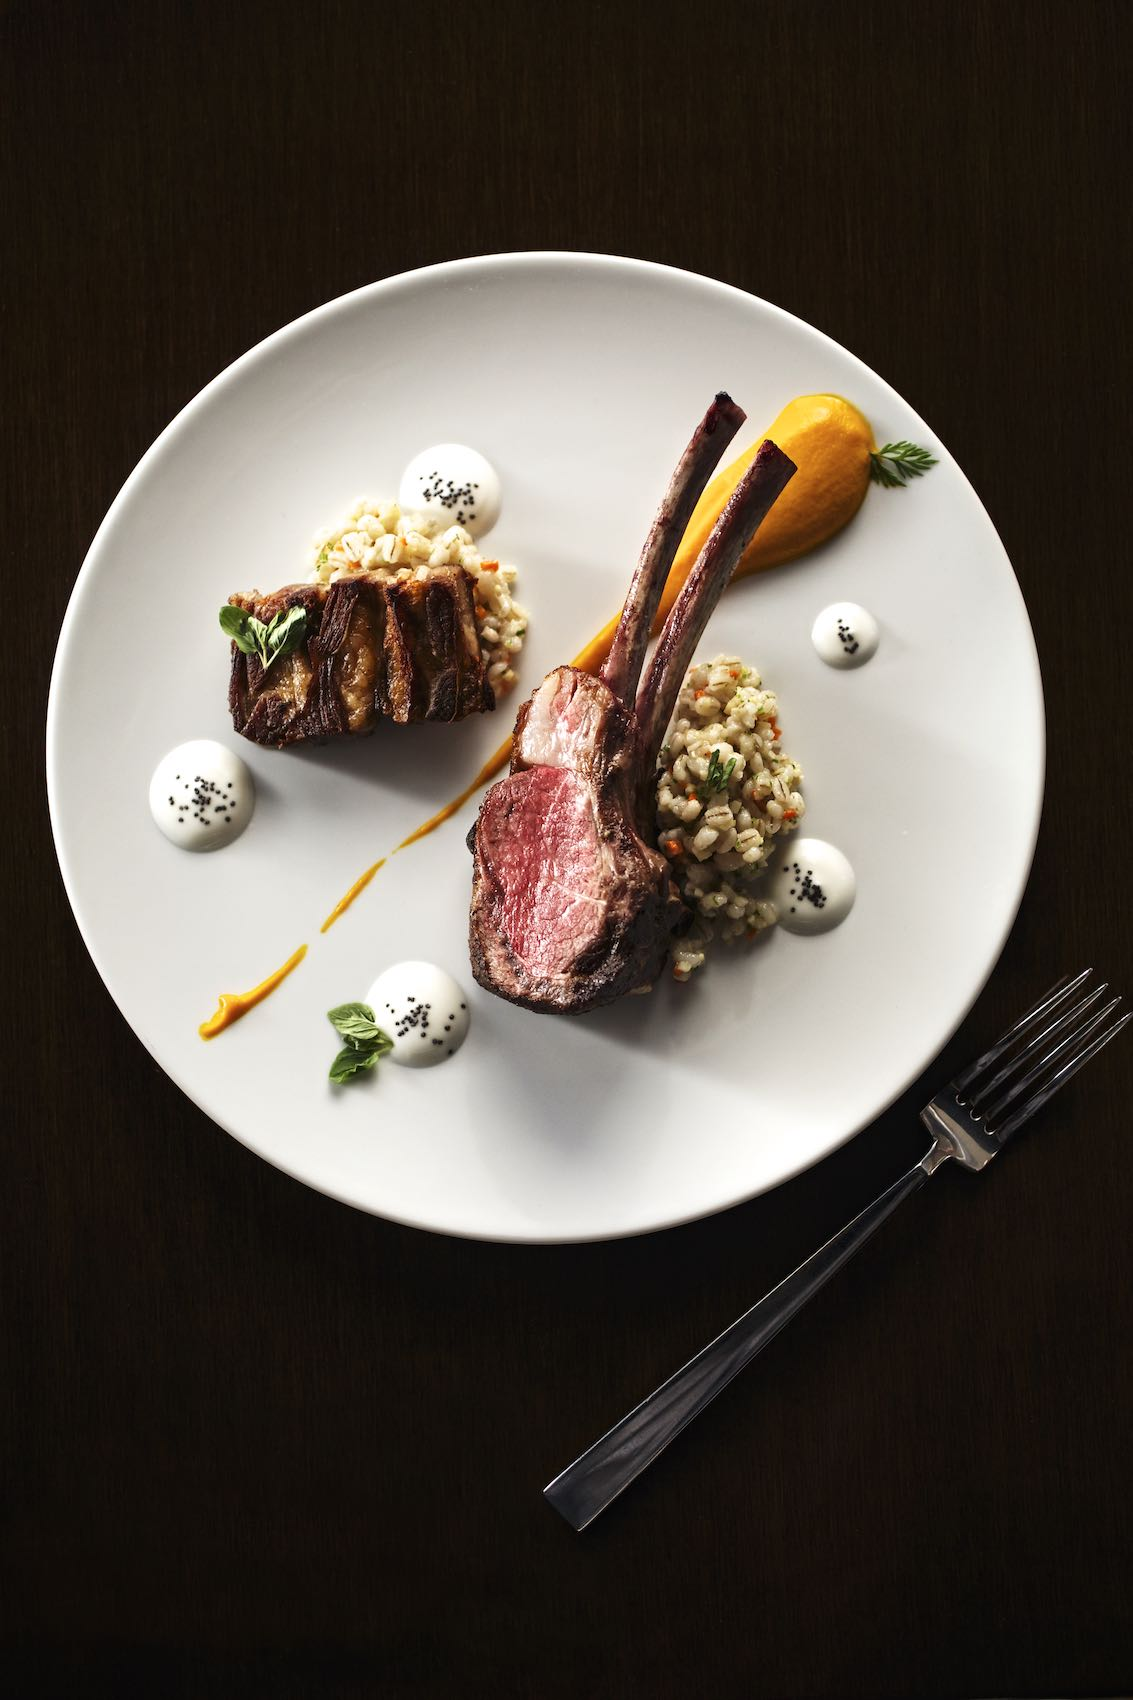 Jody Horton Photography - Lamb chop and grains on a white plate.